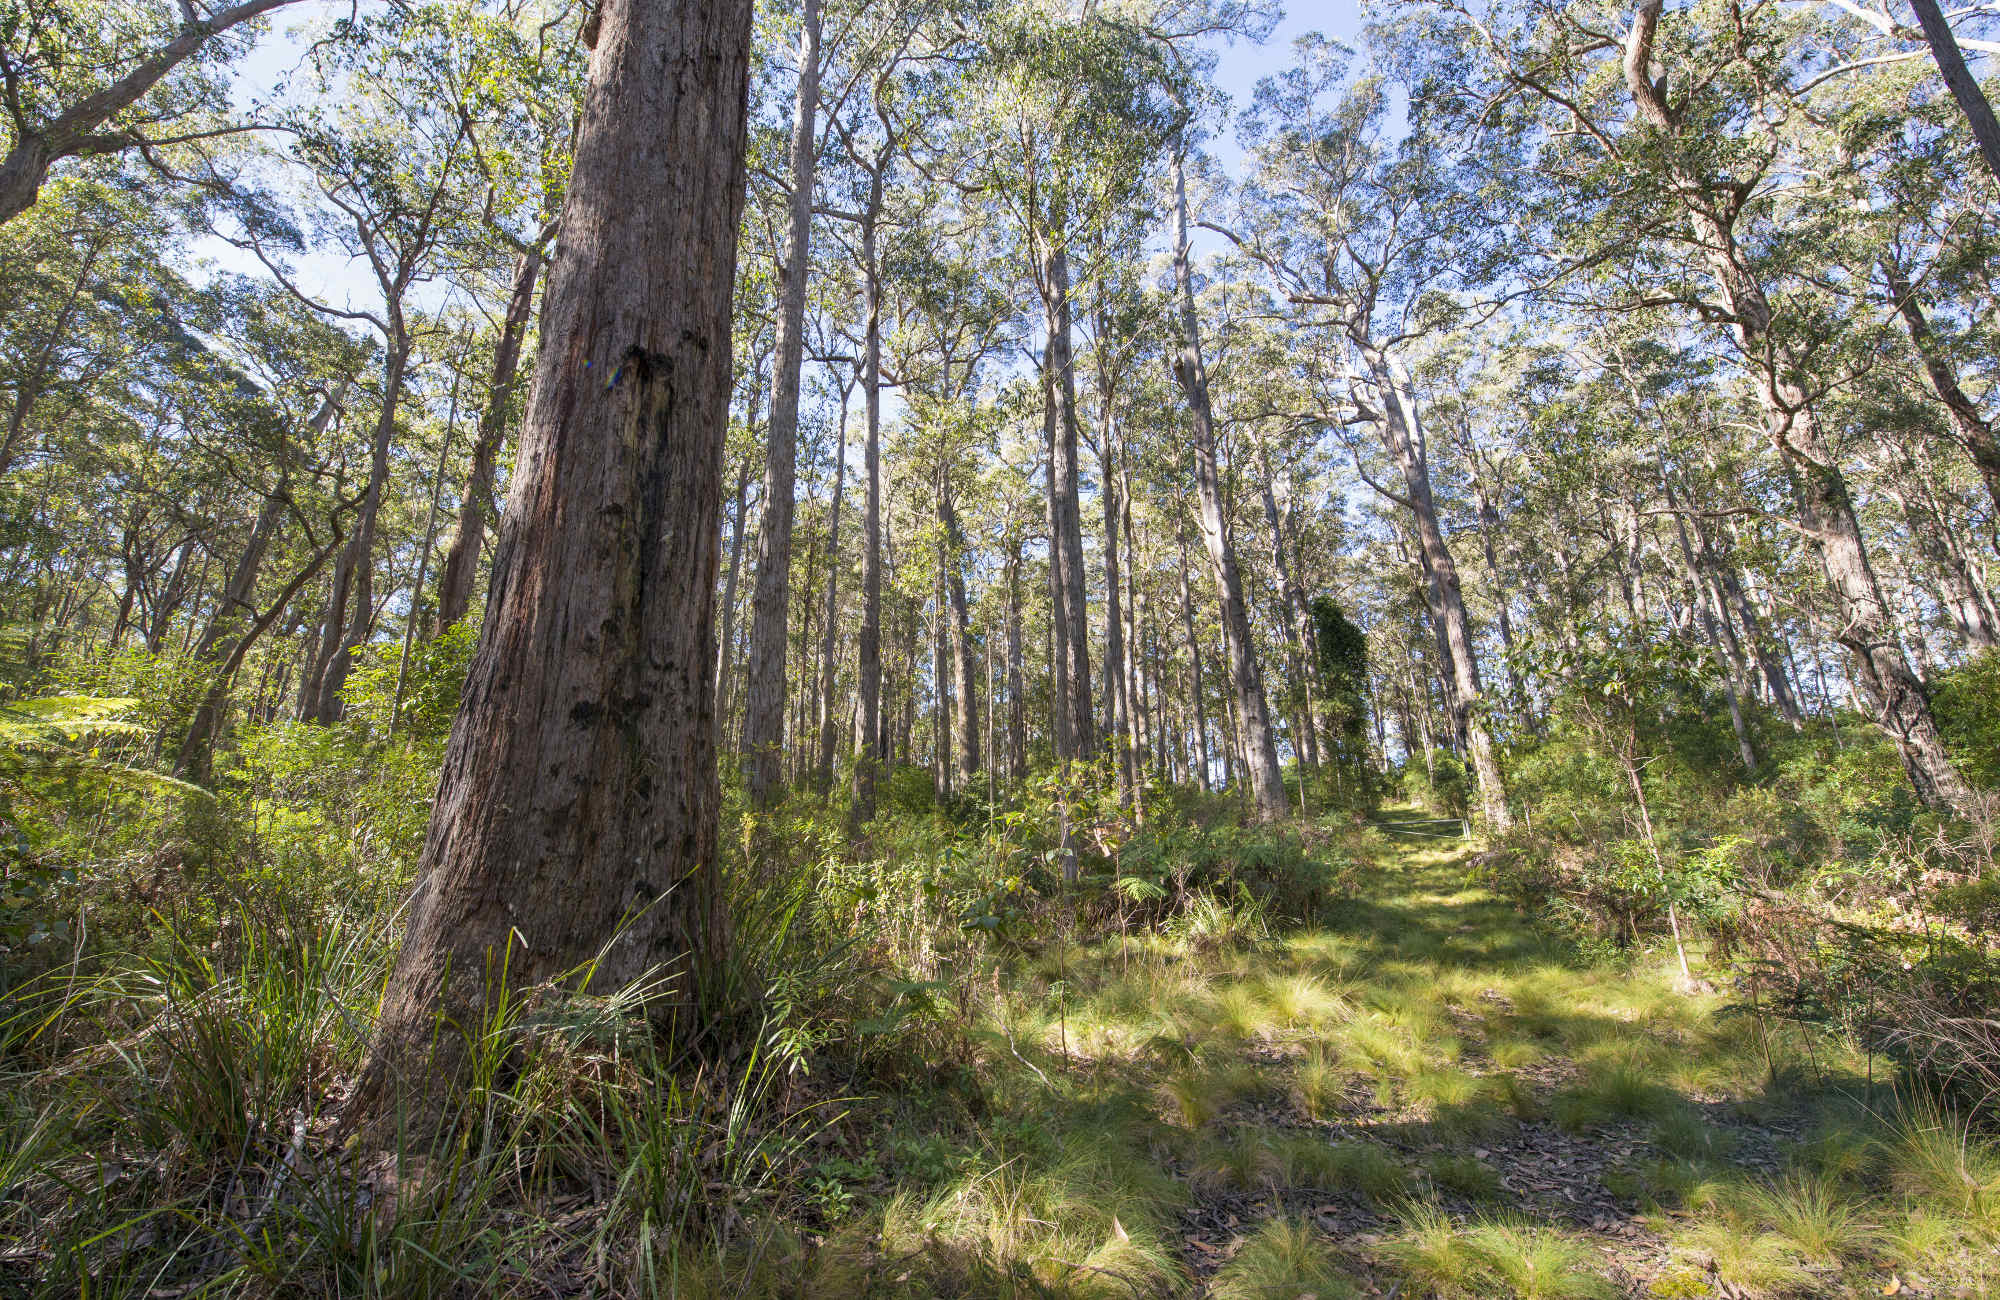 Forest view on Carabeen track with large tree in the foreground.  John Spencer/OEH.